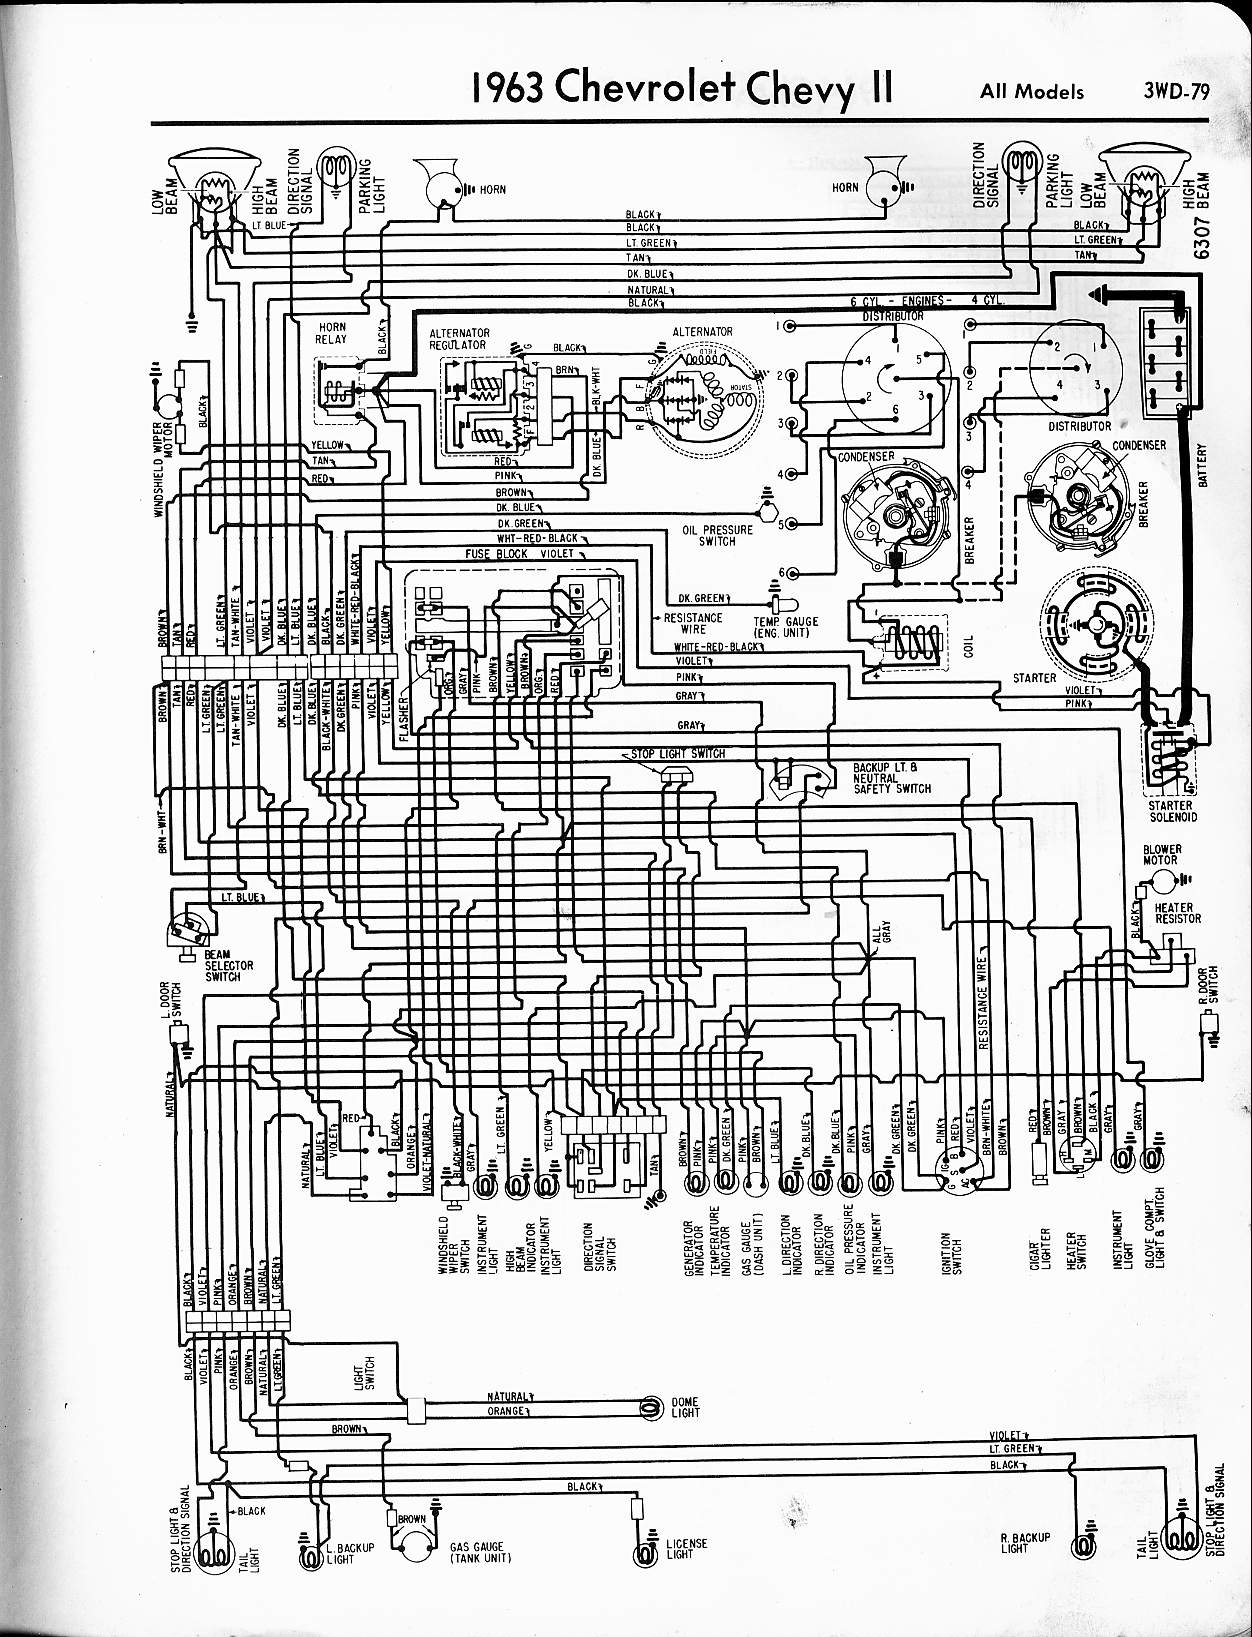 MWireChev63_3WD 079?resize\\\\\\\\\\\\\\\=665%2C869 1965 c10 wiring diagram 66 chevy c10 alternator wiring diagram 1964 chevrolet impala ignition wiring at webbmarketing.co